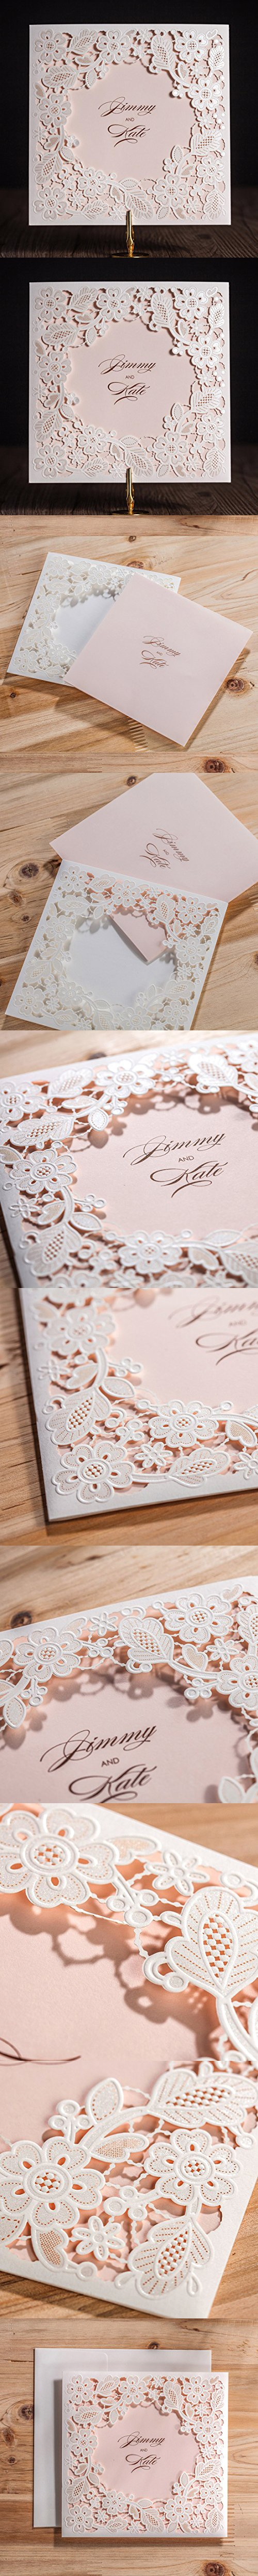 Wishmade 50x White Trifold Laser Cut Square Wedding Invitation Cards Kits with Embossed Hollow Floral Favors Bridal Shower Engagement Birthday Baby Shower Quinceanera